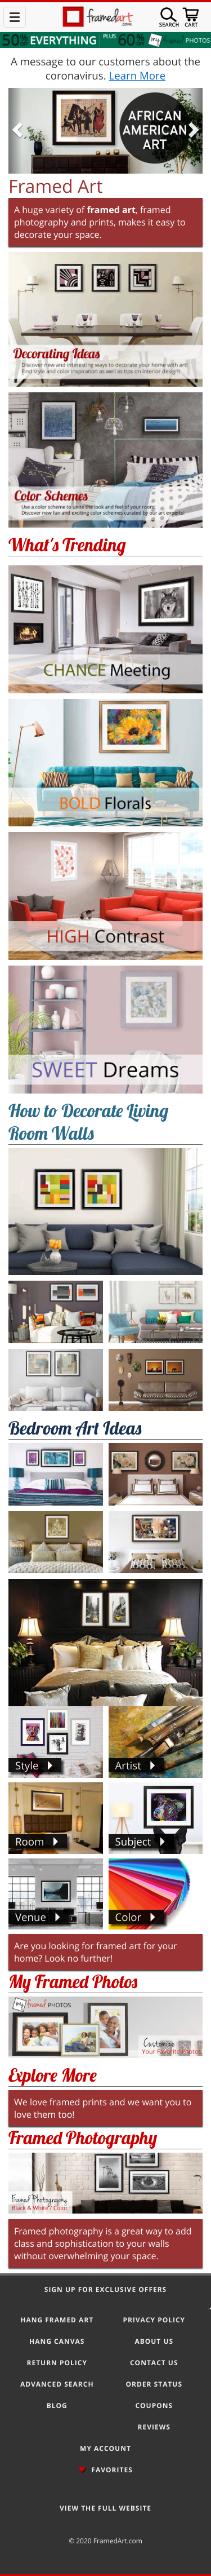 FramedArt.com Coupon